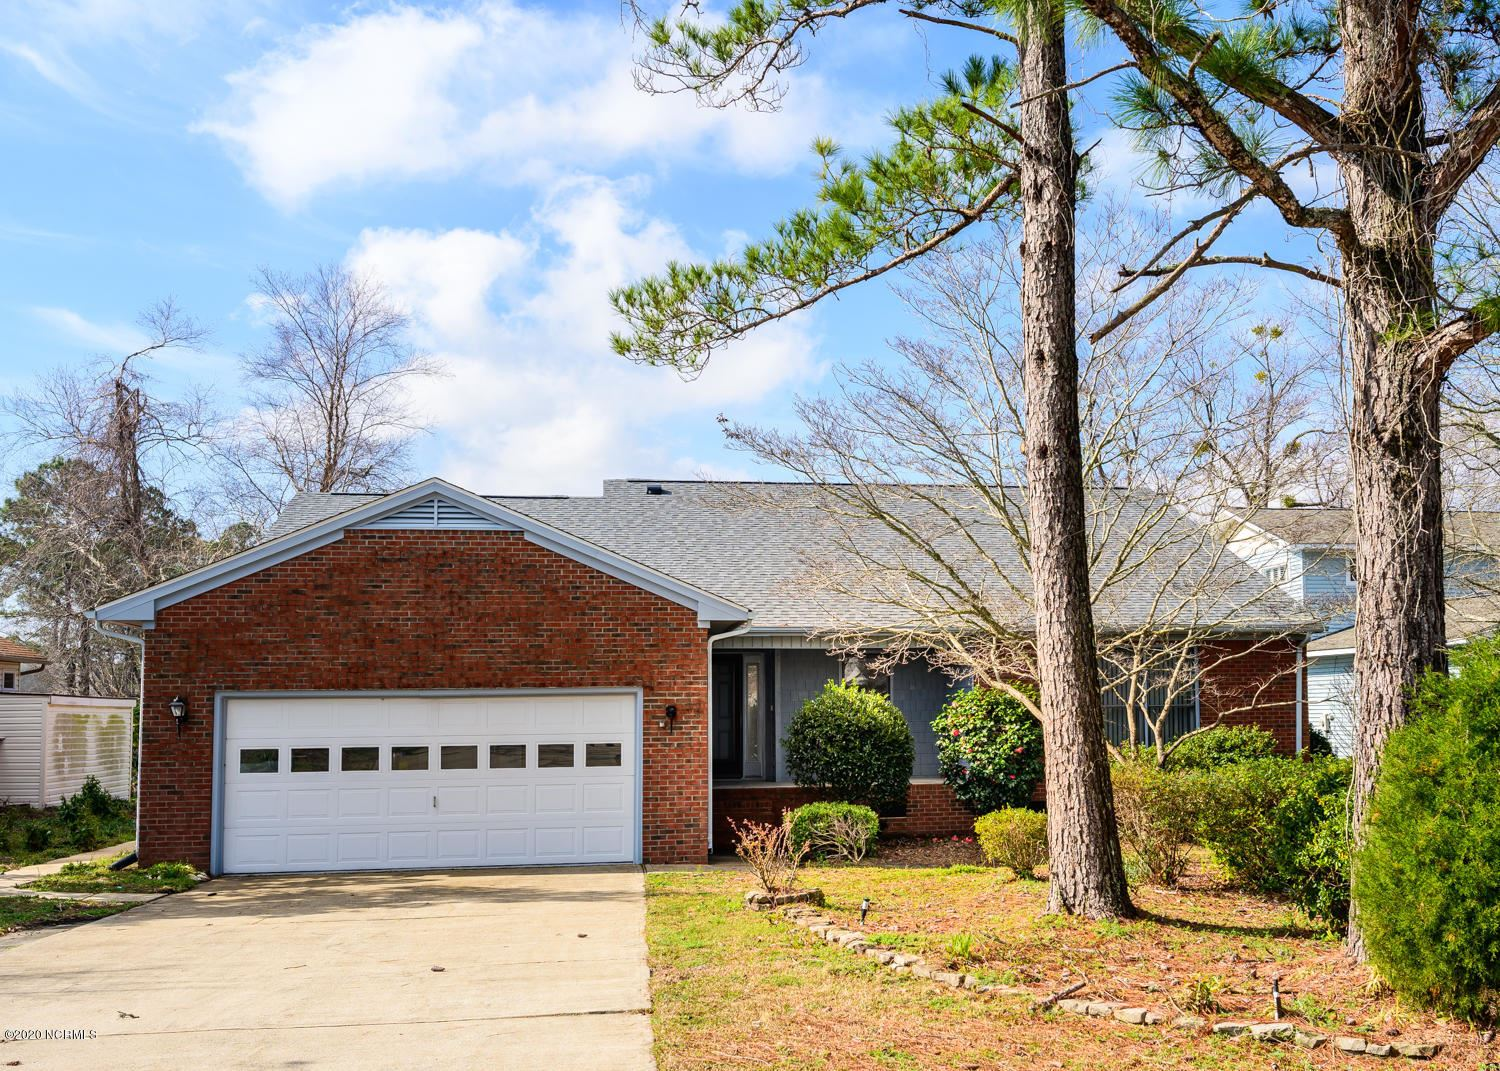 6106 Cutlass Court, New Bern, NC 28560 - #: 100210432